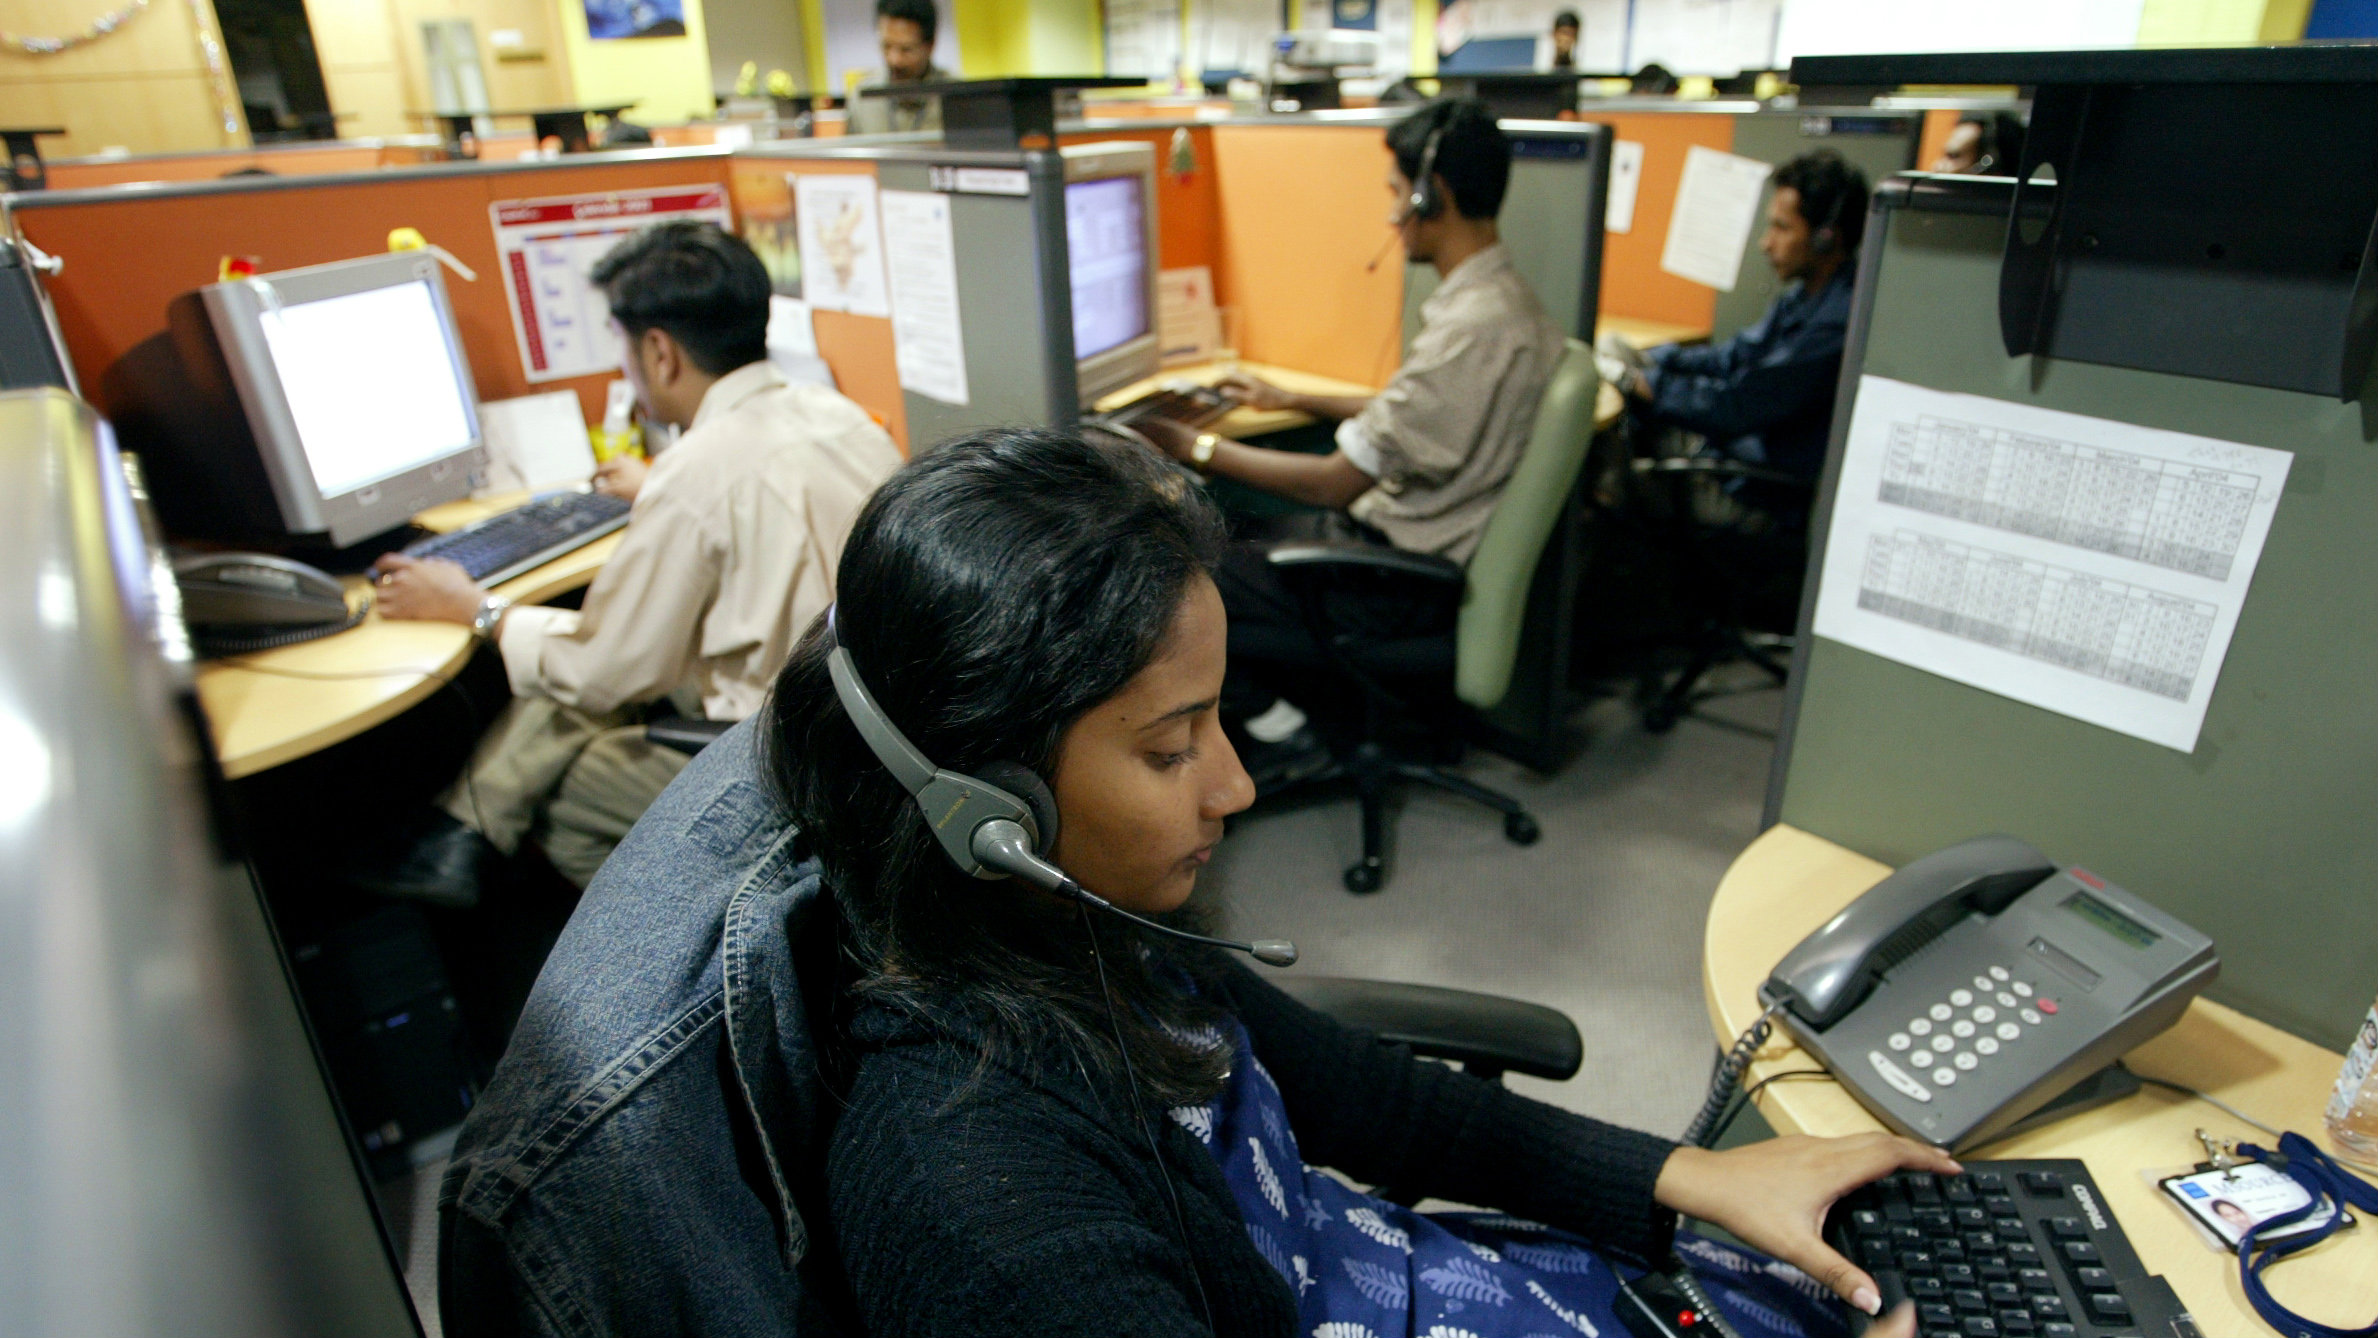 Indian employees at a call centre provide service support to international customers, in the southern city of Bangalore March 17, 2004. The hiring frenzy at call centres in India is the flip side of daily tales pouring out of the US and Britain, where thousands of software and back-office jobs are being cut as companies take advantage of cheap communications offshore to drive down costs. India is the undisputed leader of emerging markets to which developed economies are outsourcing high-technology jobs, IT consultancy firm Gartner said in a report released on Wednesday. The $3.6 billion industry in India is seen rocketing to 13.8 billion by 2007 with the number of jobs quadrupling to 1 million.